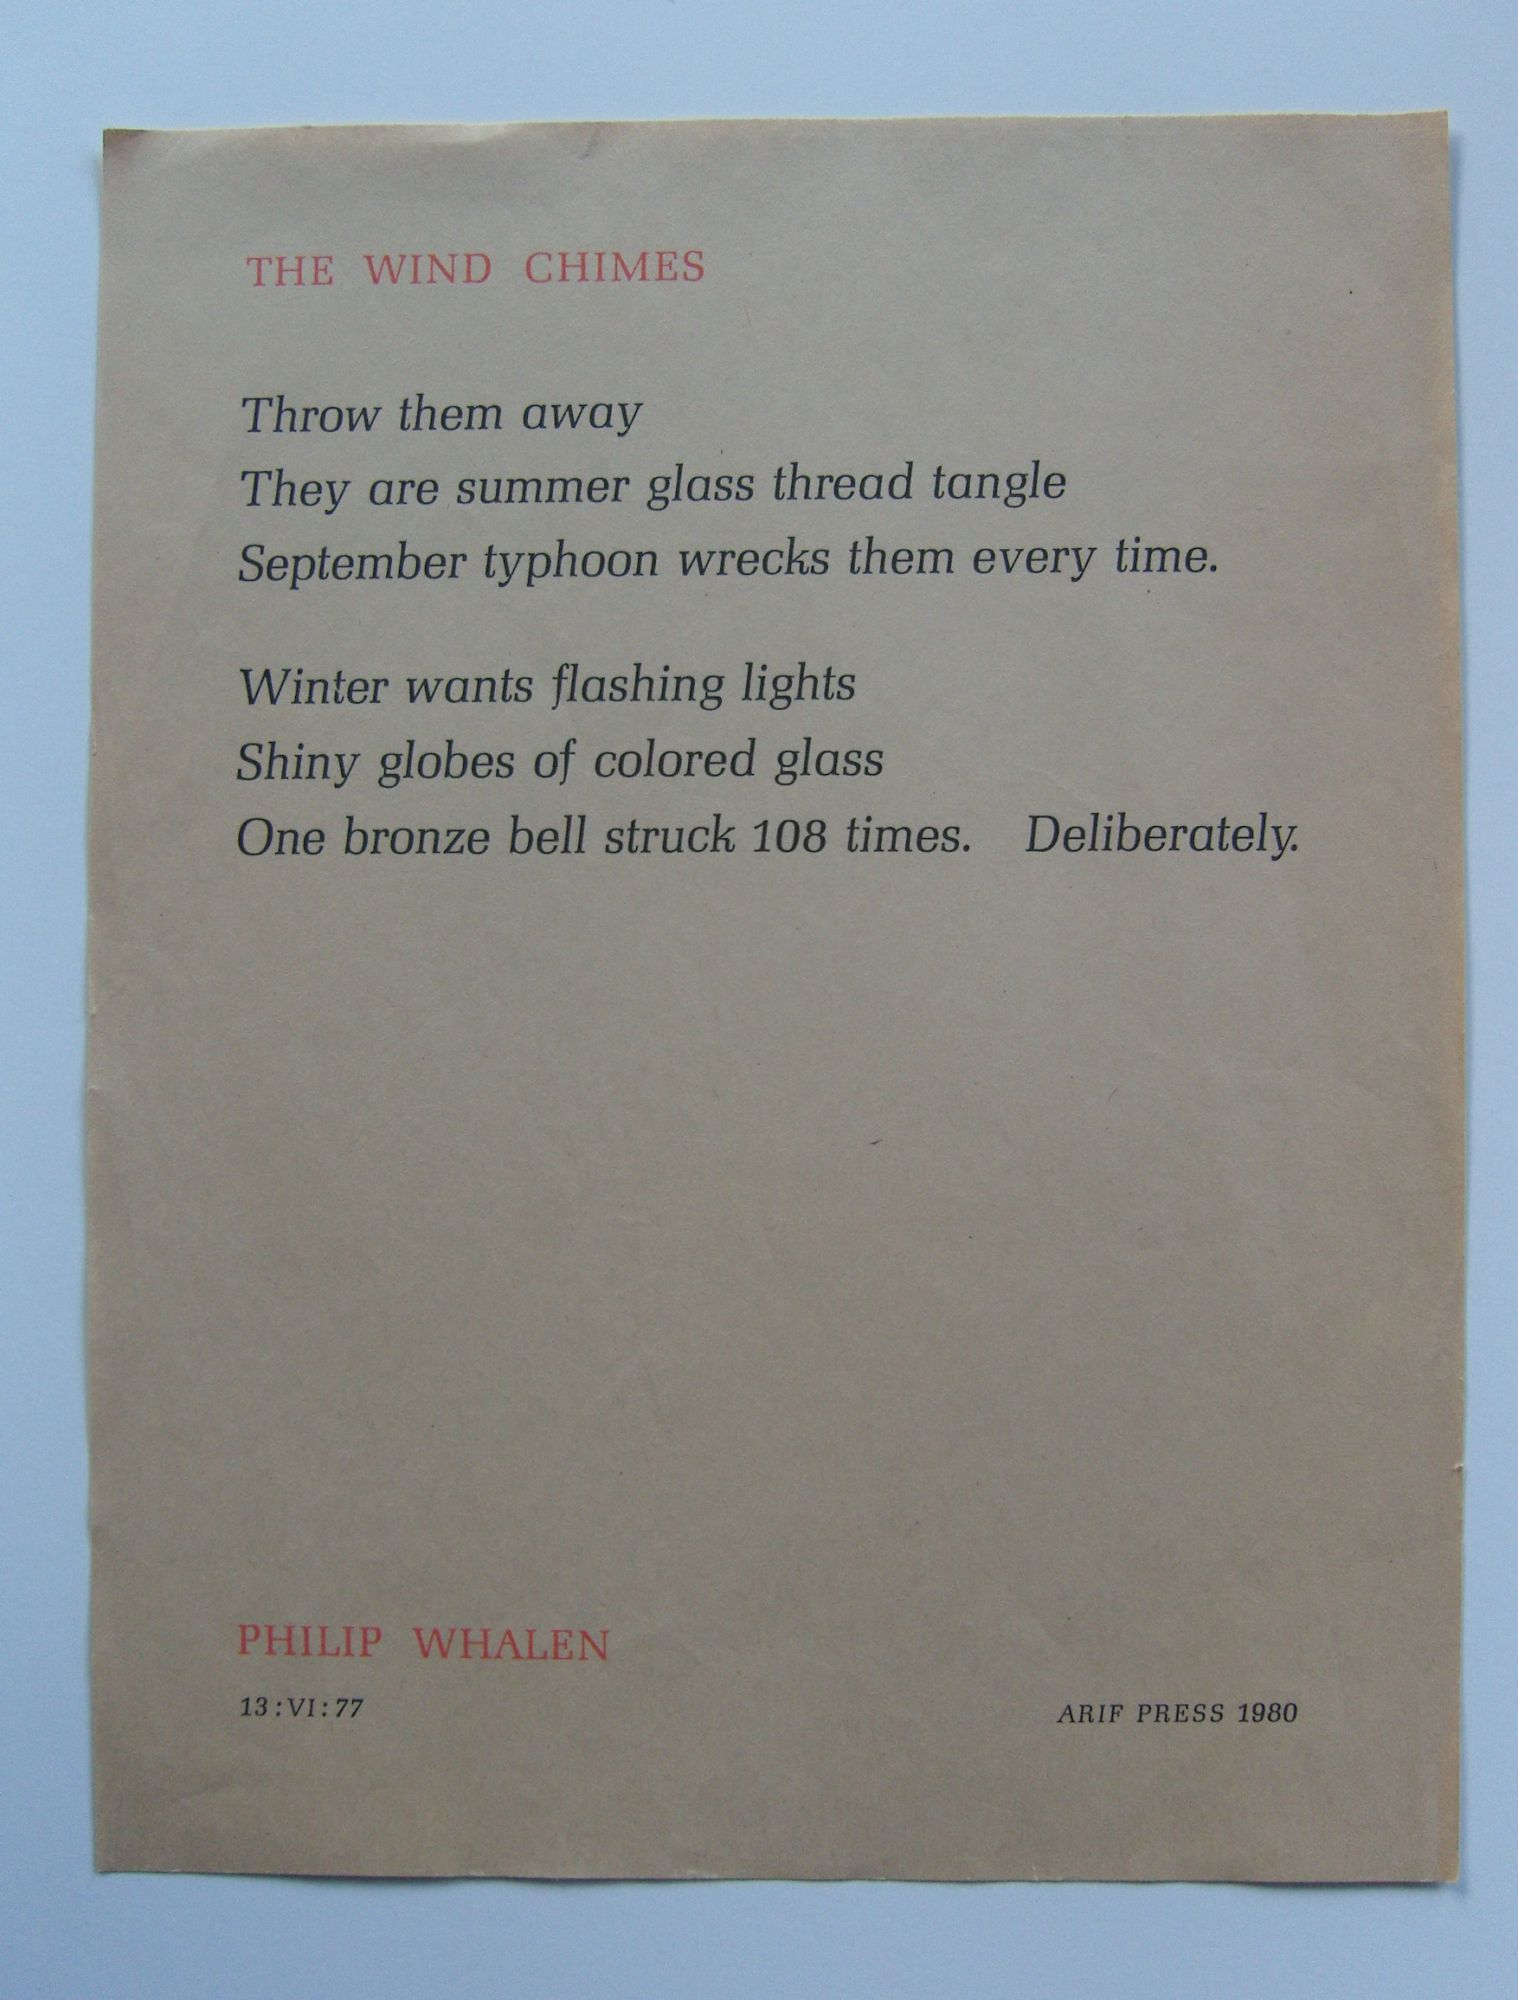 The Wind Chimes Whalen, Philip Near Fine Broadside. 11 3/4 x 9 inches. Printed on lightweight newsprint. A poem by Whalen, dated originally 13: VI: 77. Slight edgewear. Four copies in WorldCa